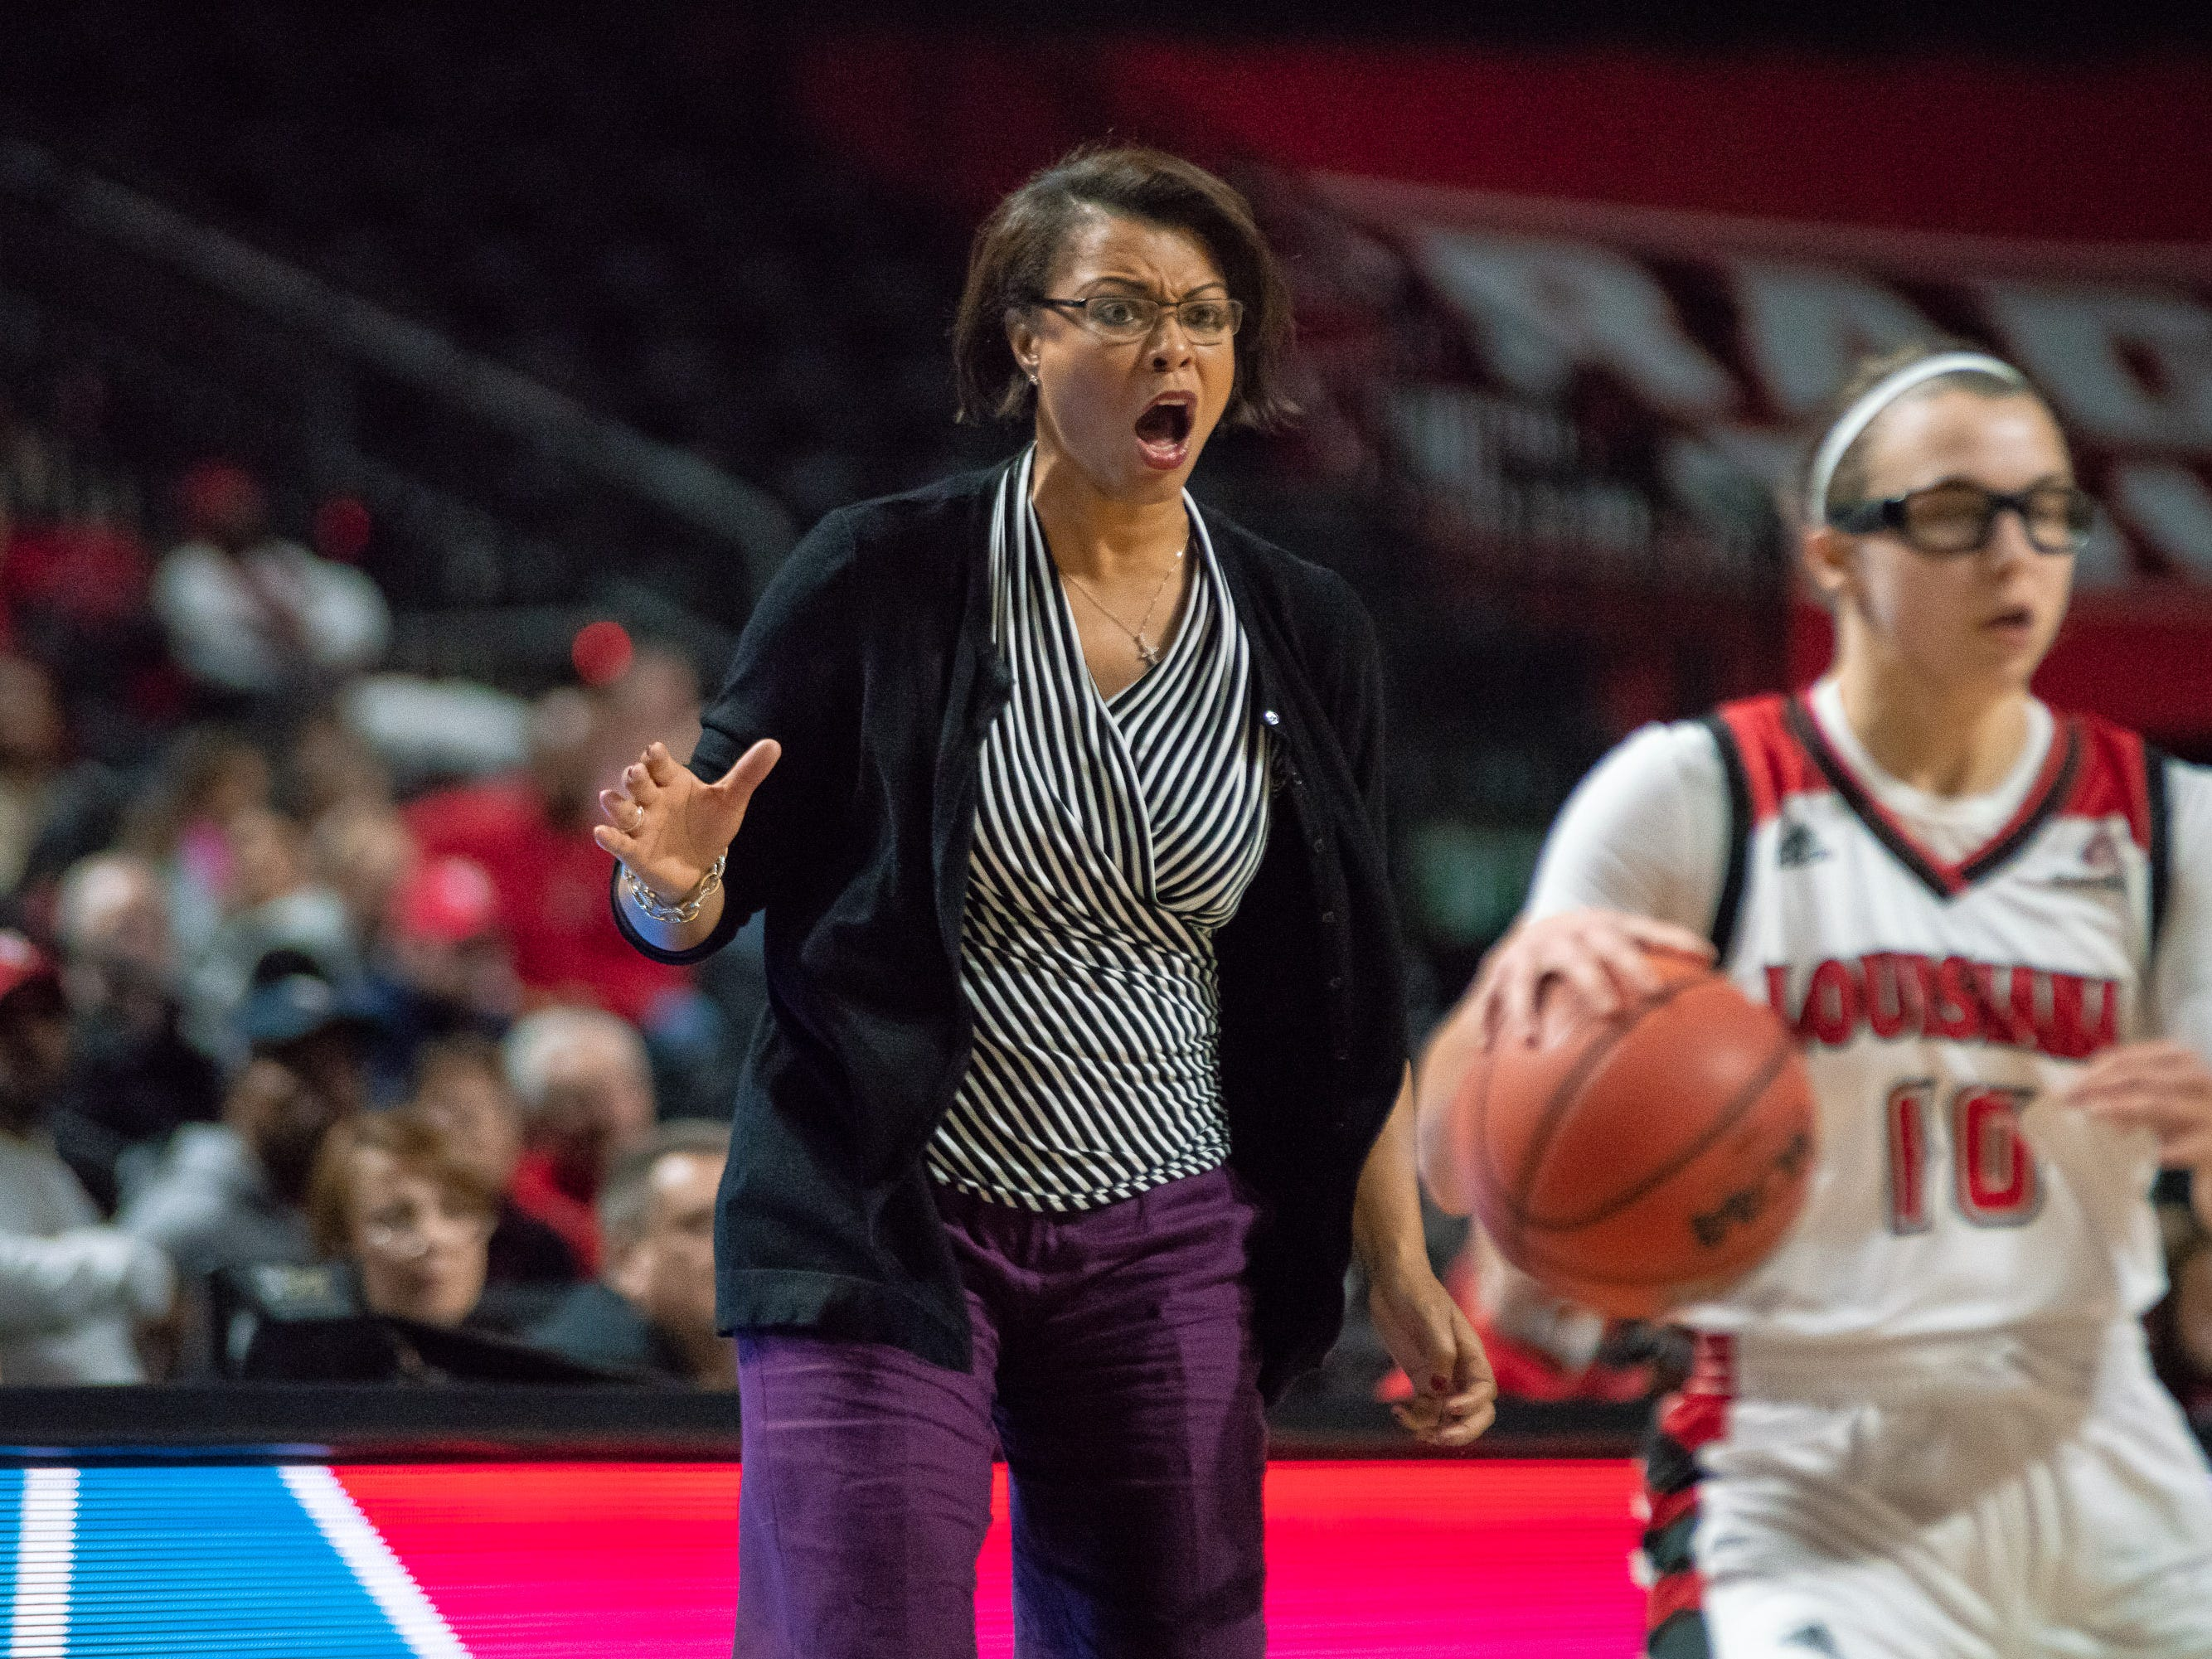 LSU's head coach Nikki Fargas calls out to the defense from the sidelines as the Ragin' Cajuns play against LSU Tigers at the Cajundome on Dec. 20, 2018.